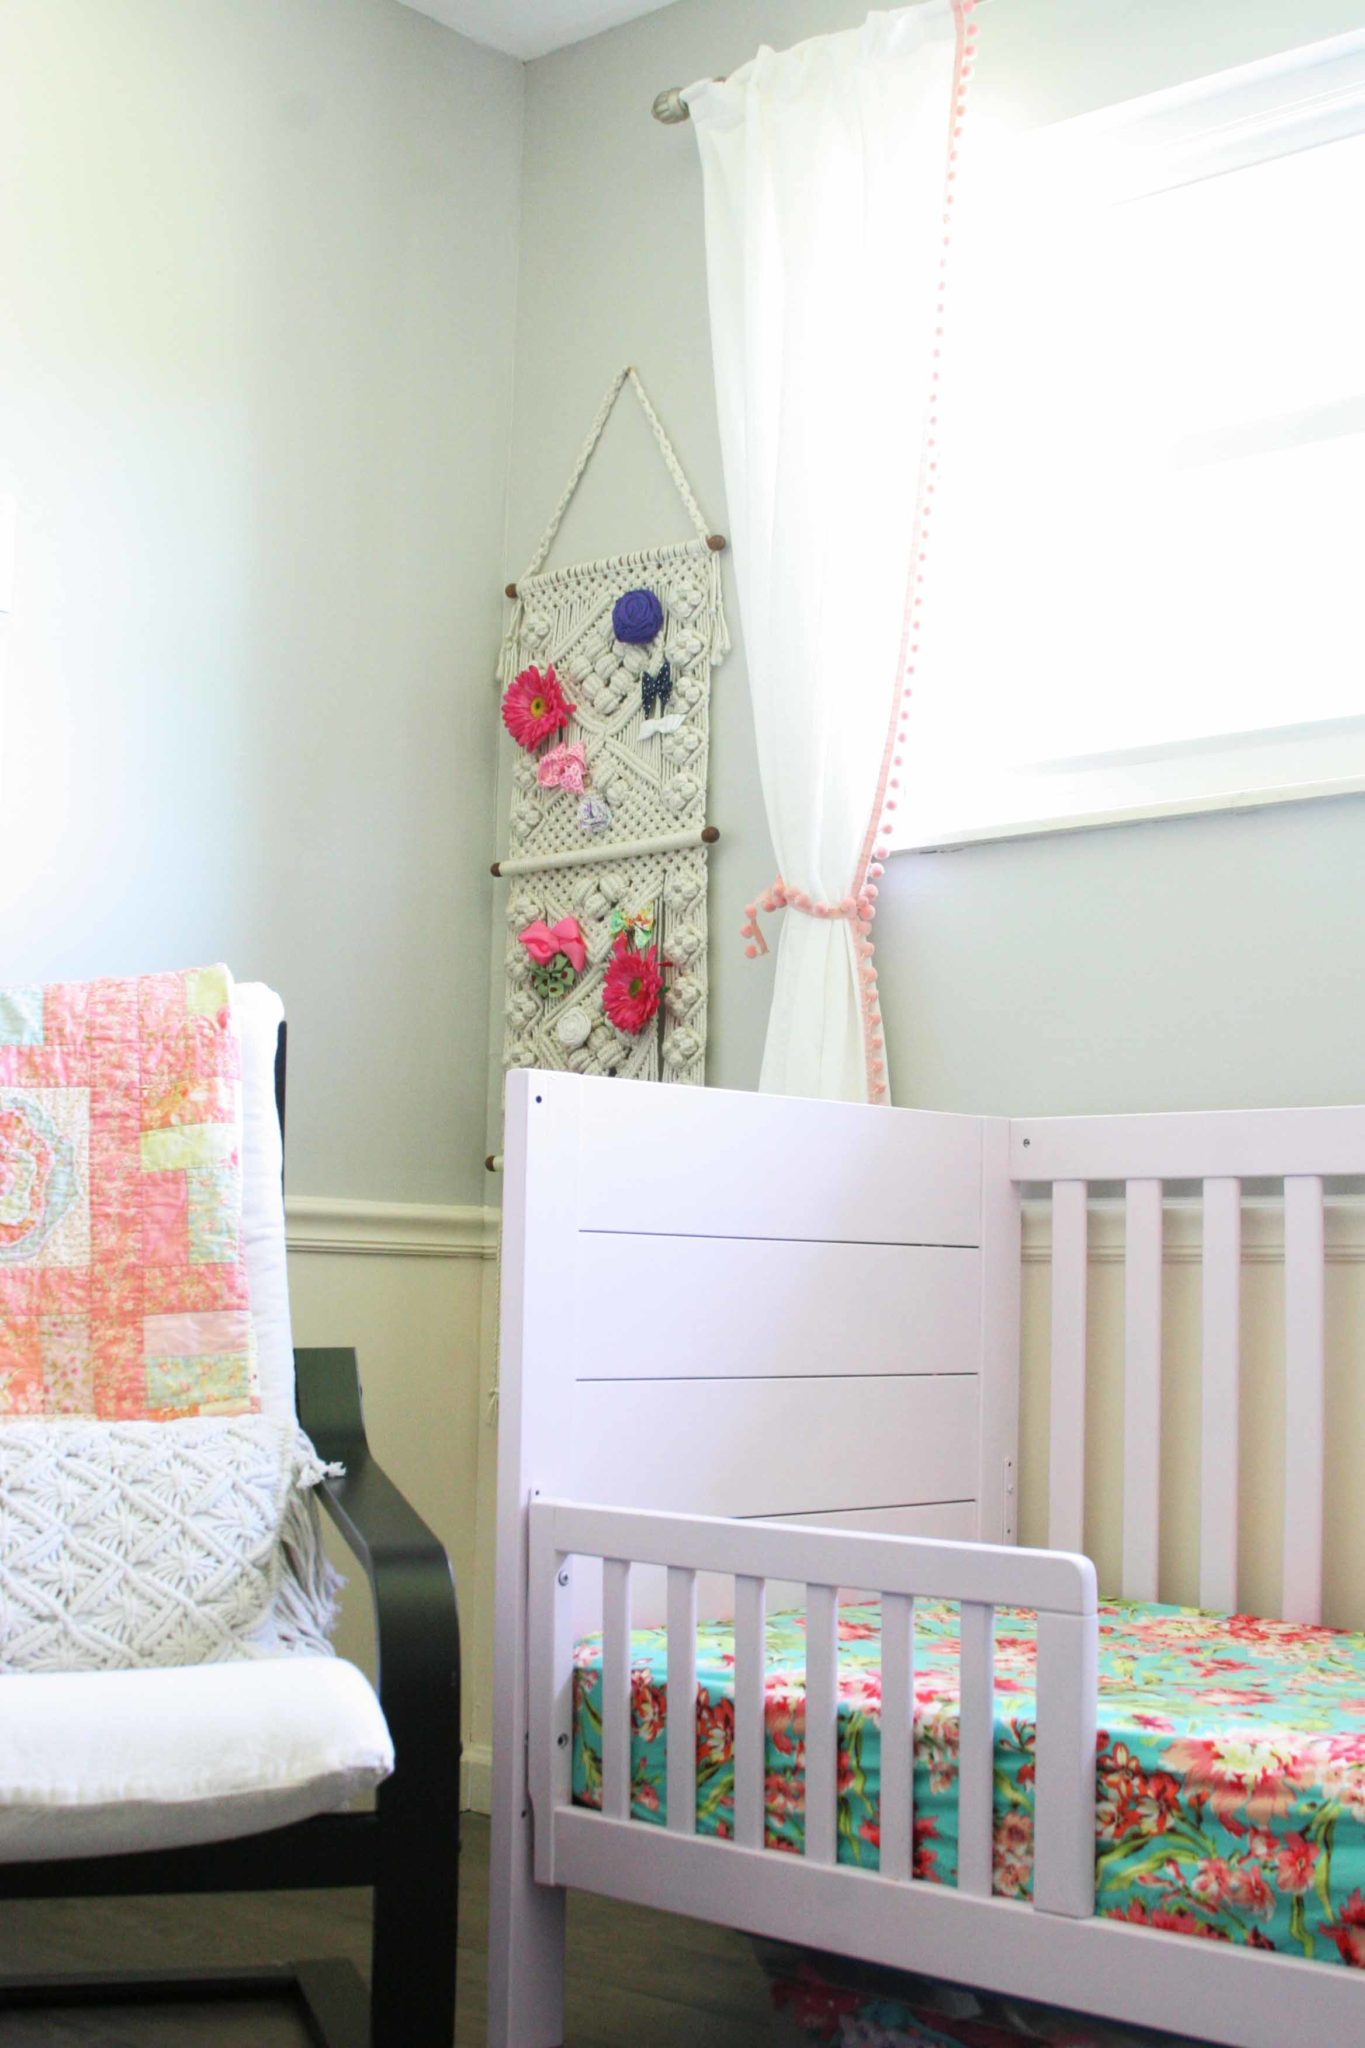 Amelia S Room Toddler Bedroom: Modern-bohemian-baby-girl-nursery-toddler12